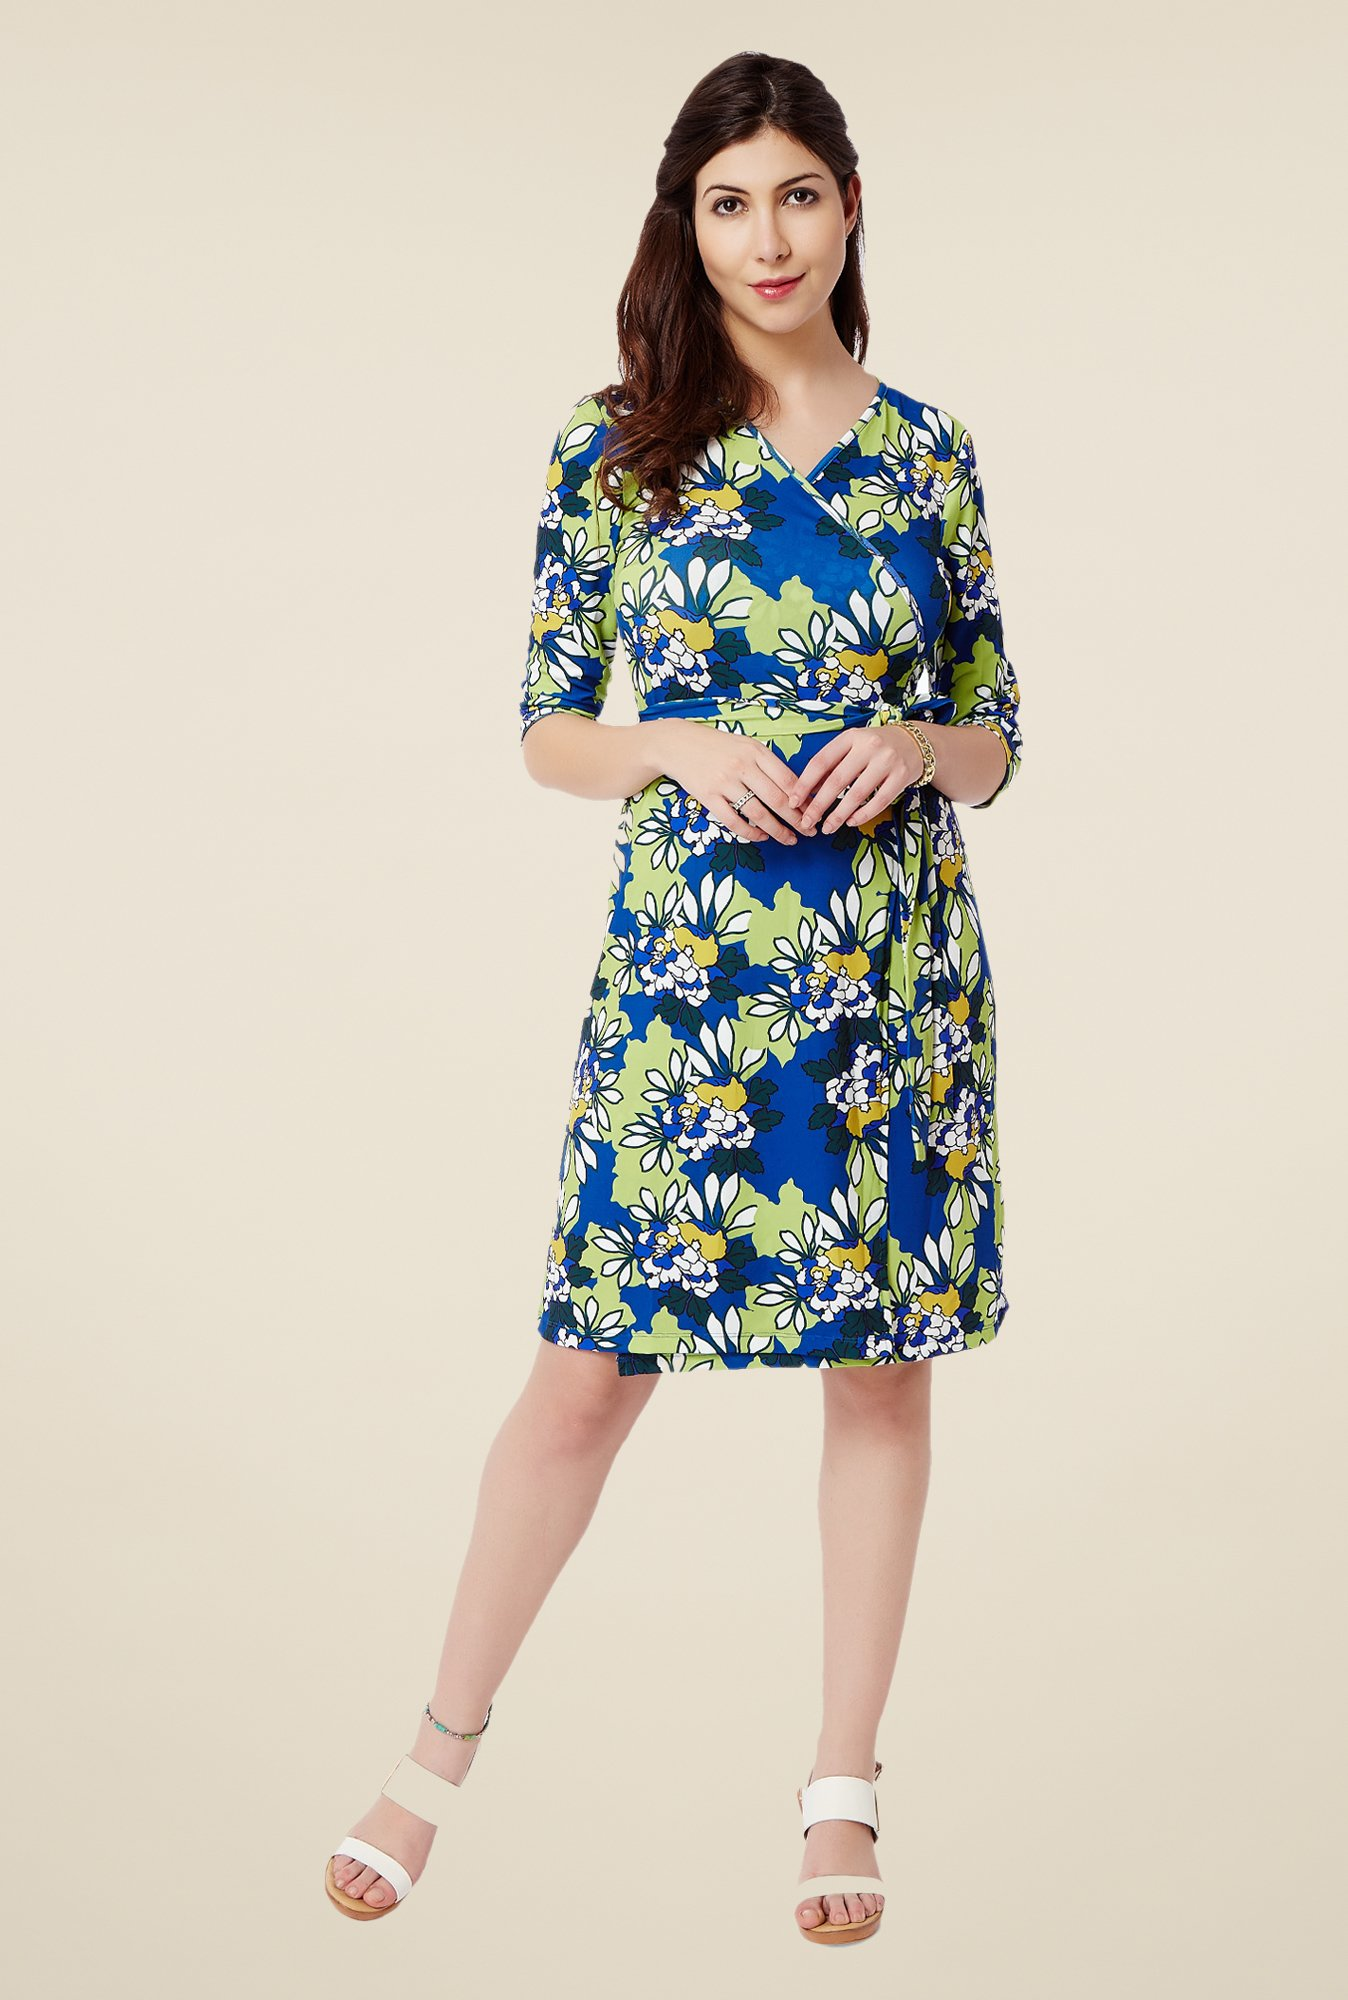 Avirate Blue Floral Print Wrap Dress